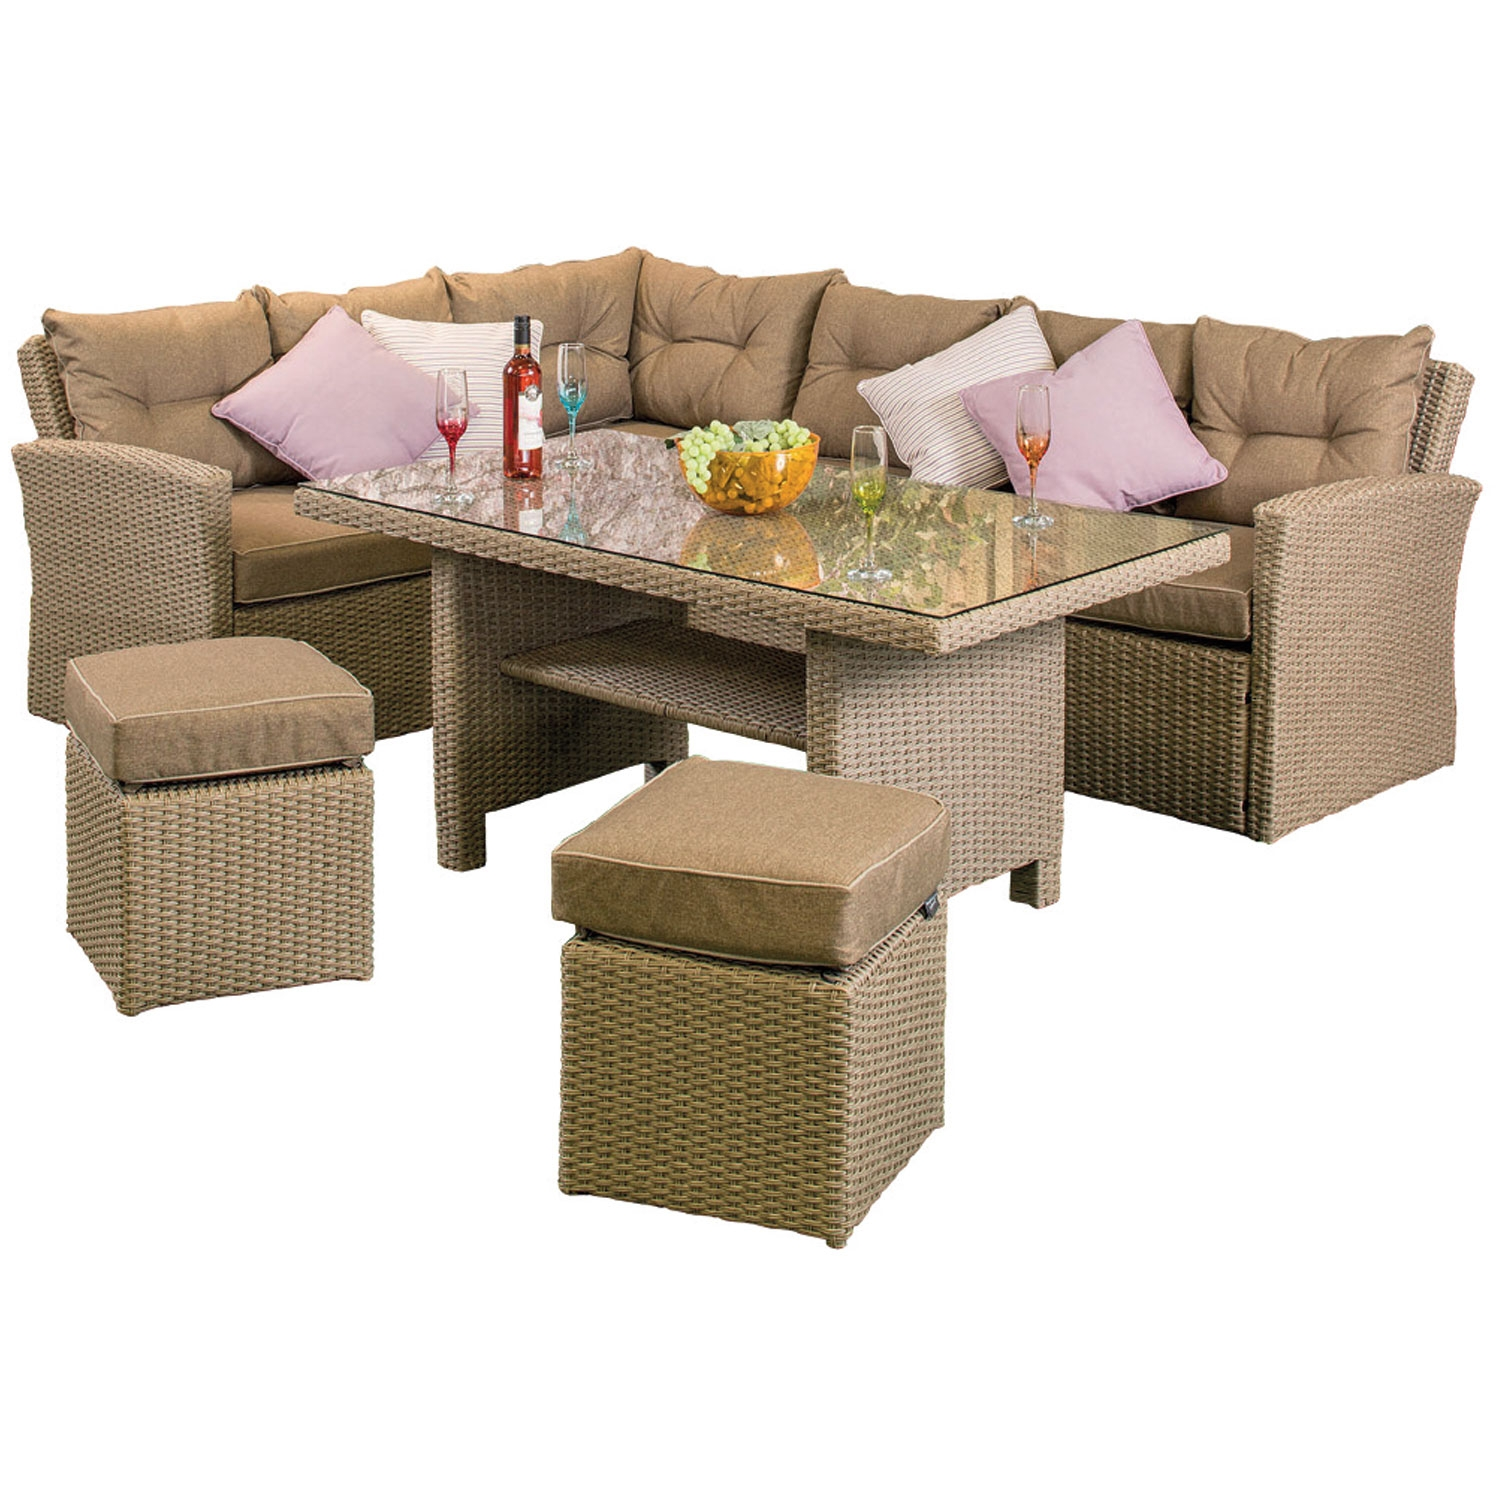 Ashton Rattan Corner Sofa Set